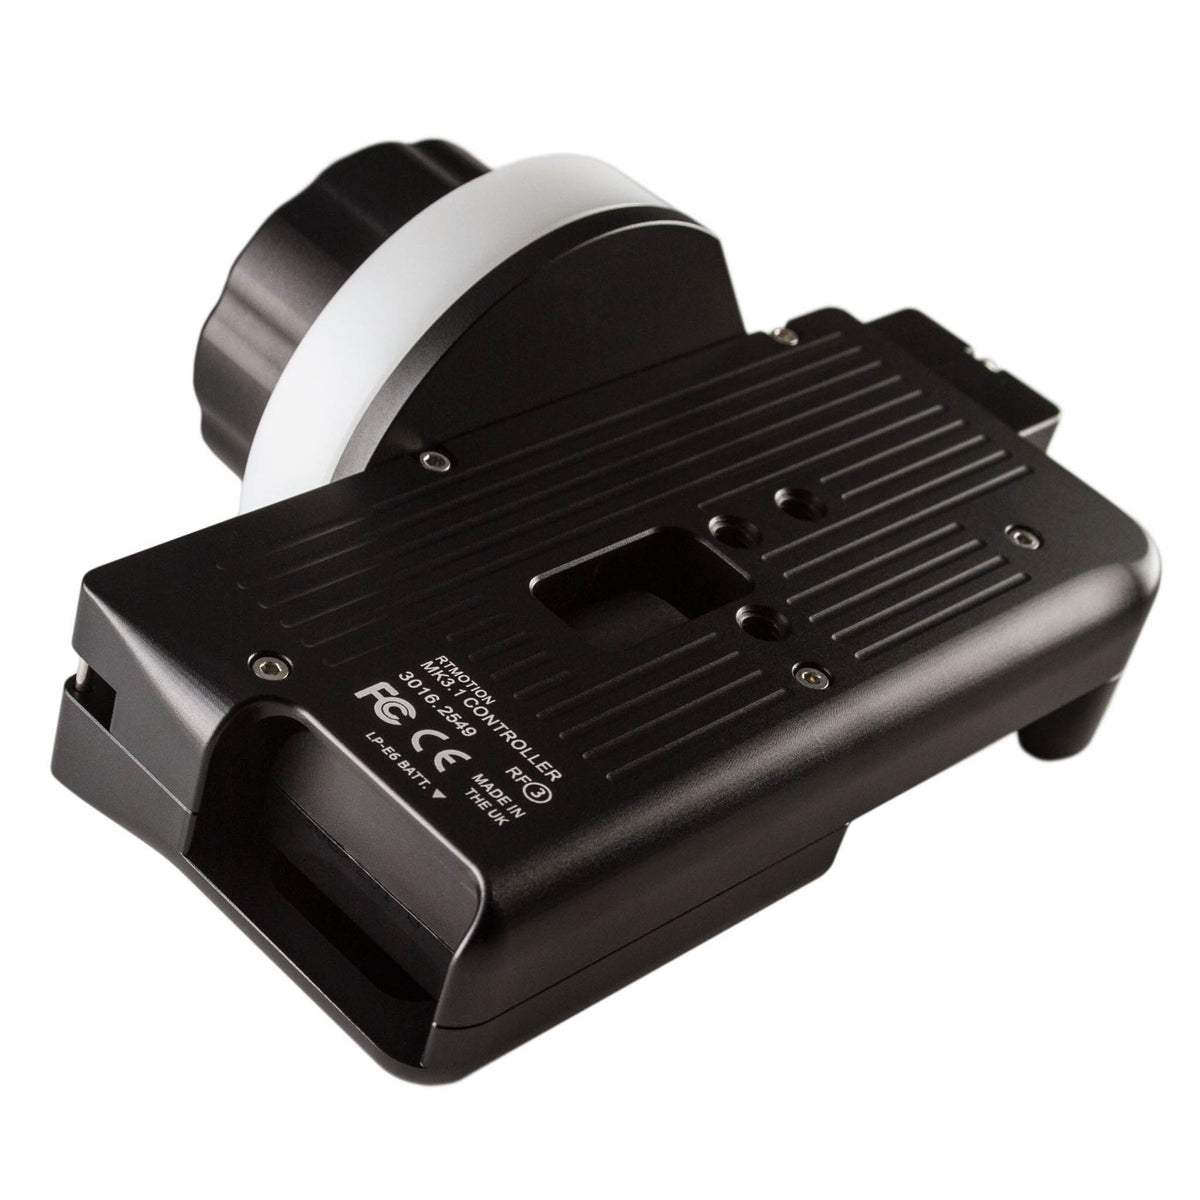 RT Motion MK3.1 wireless follow focus hand controller back